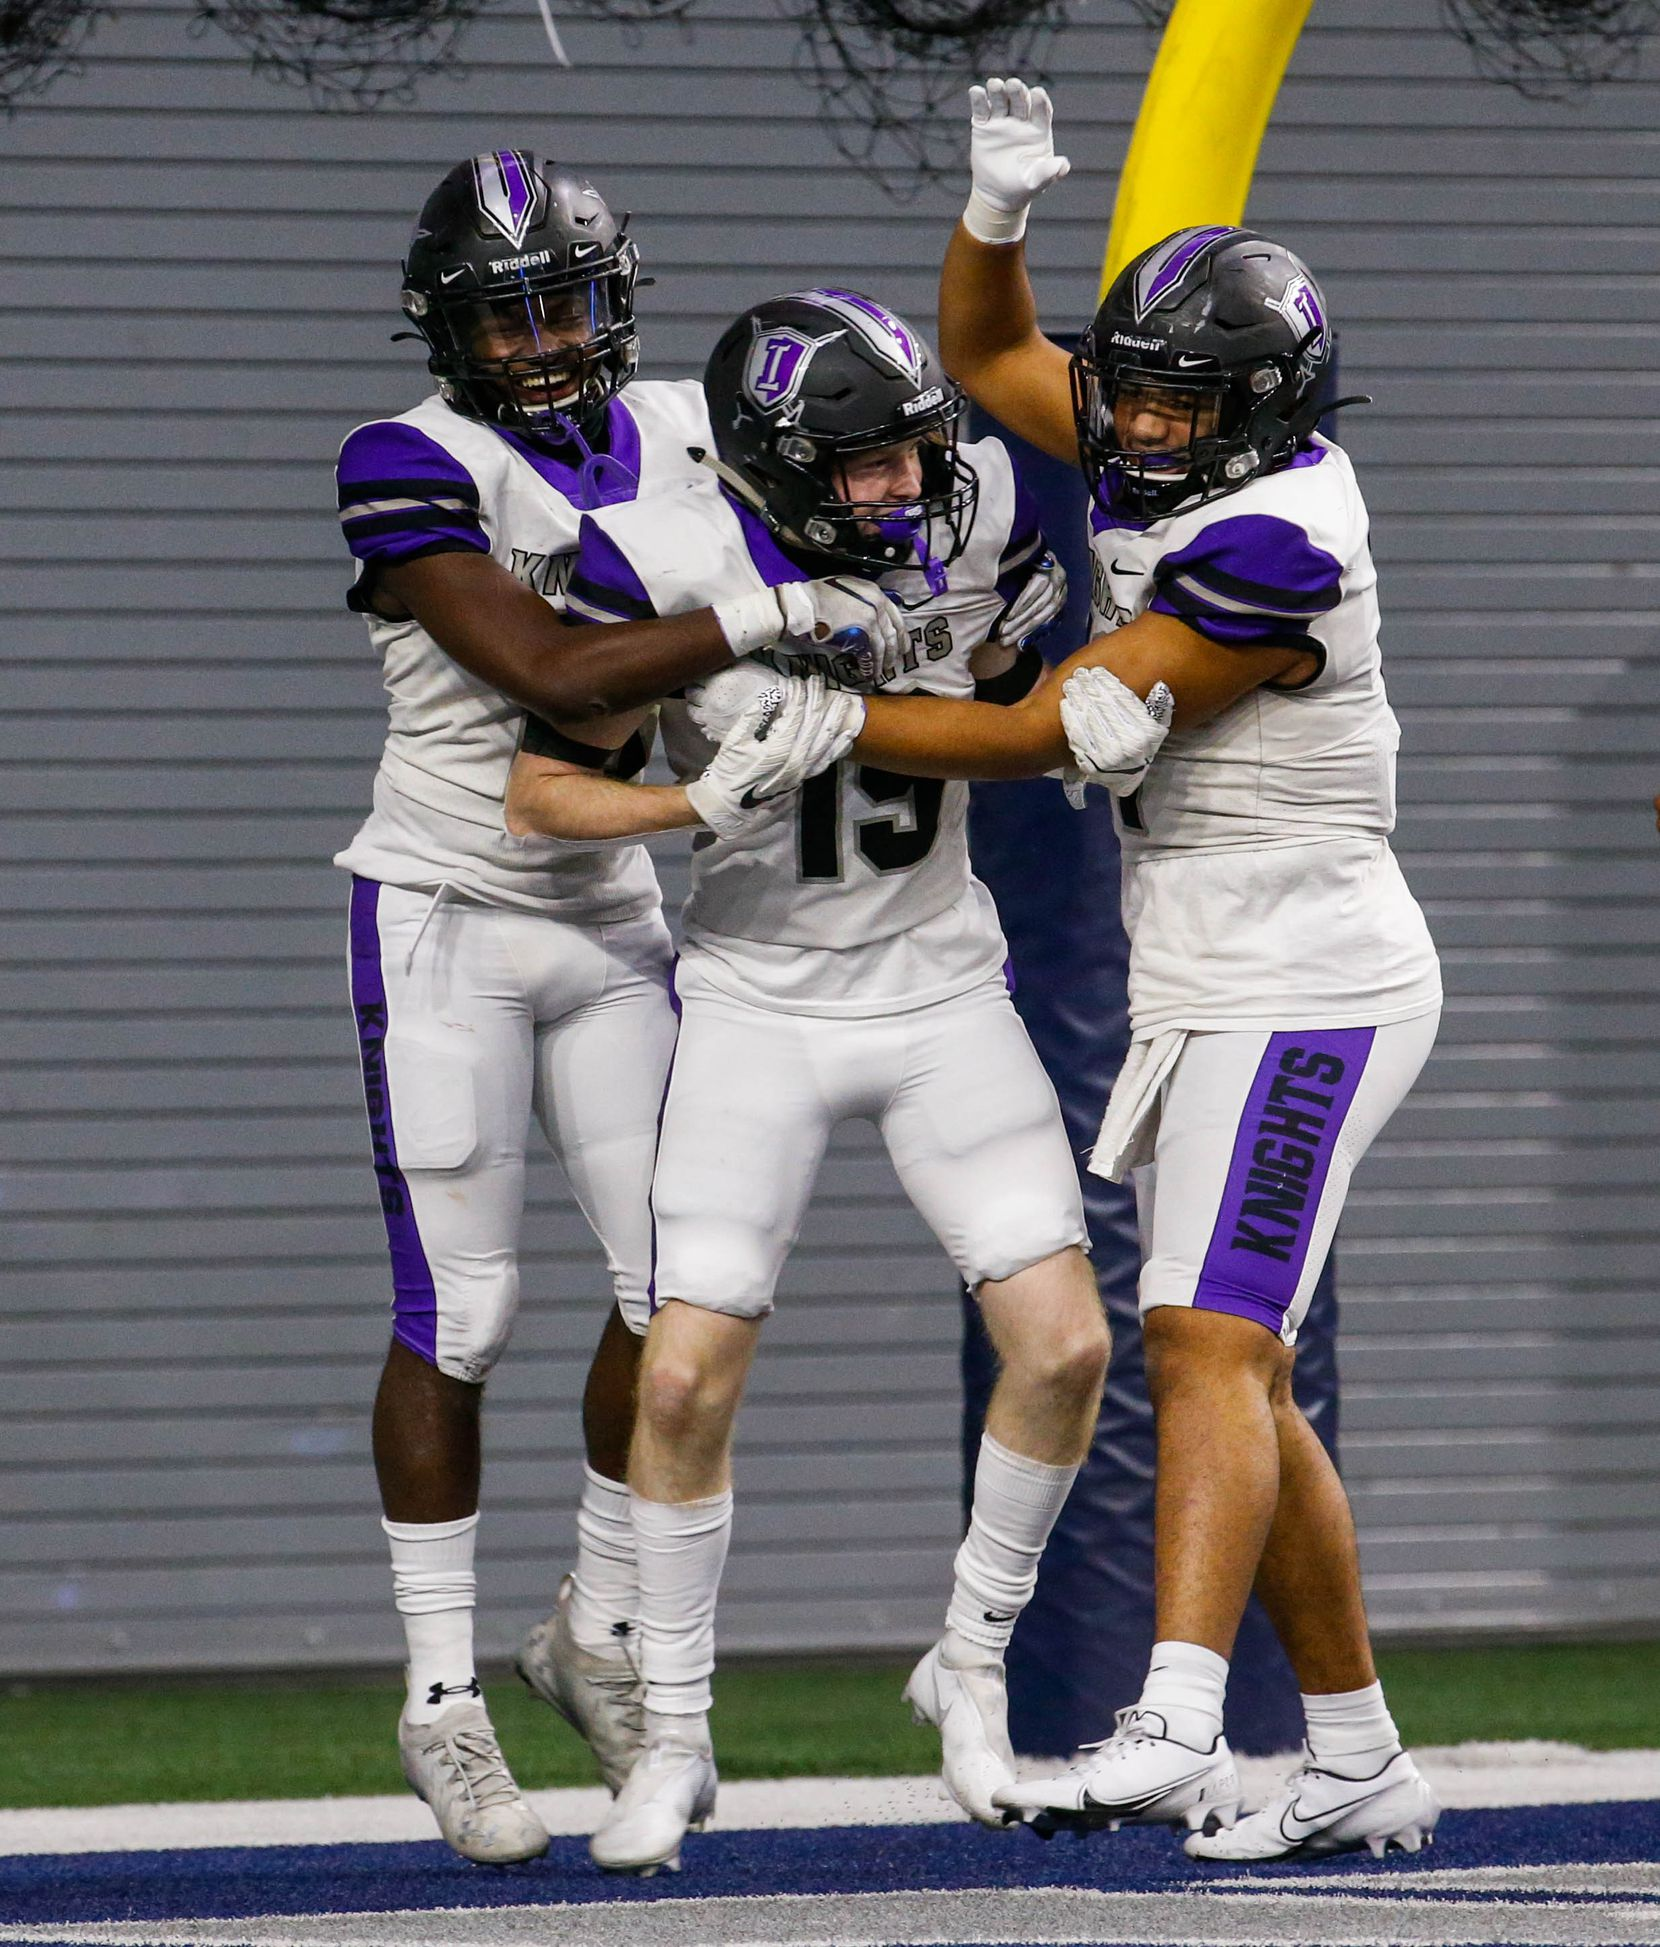 Frisco Independence Ryan Pickering (19) celebrates with teammates after scoring a touchdown against Frisco Heritage during the second half of a game at the Ford Center at the Star in Frisco on Thursday, Dec. 3, 2020. (Juan Figueroa/ The Dallas Morning News)